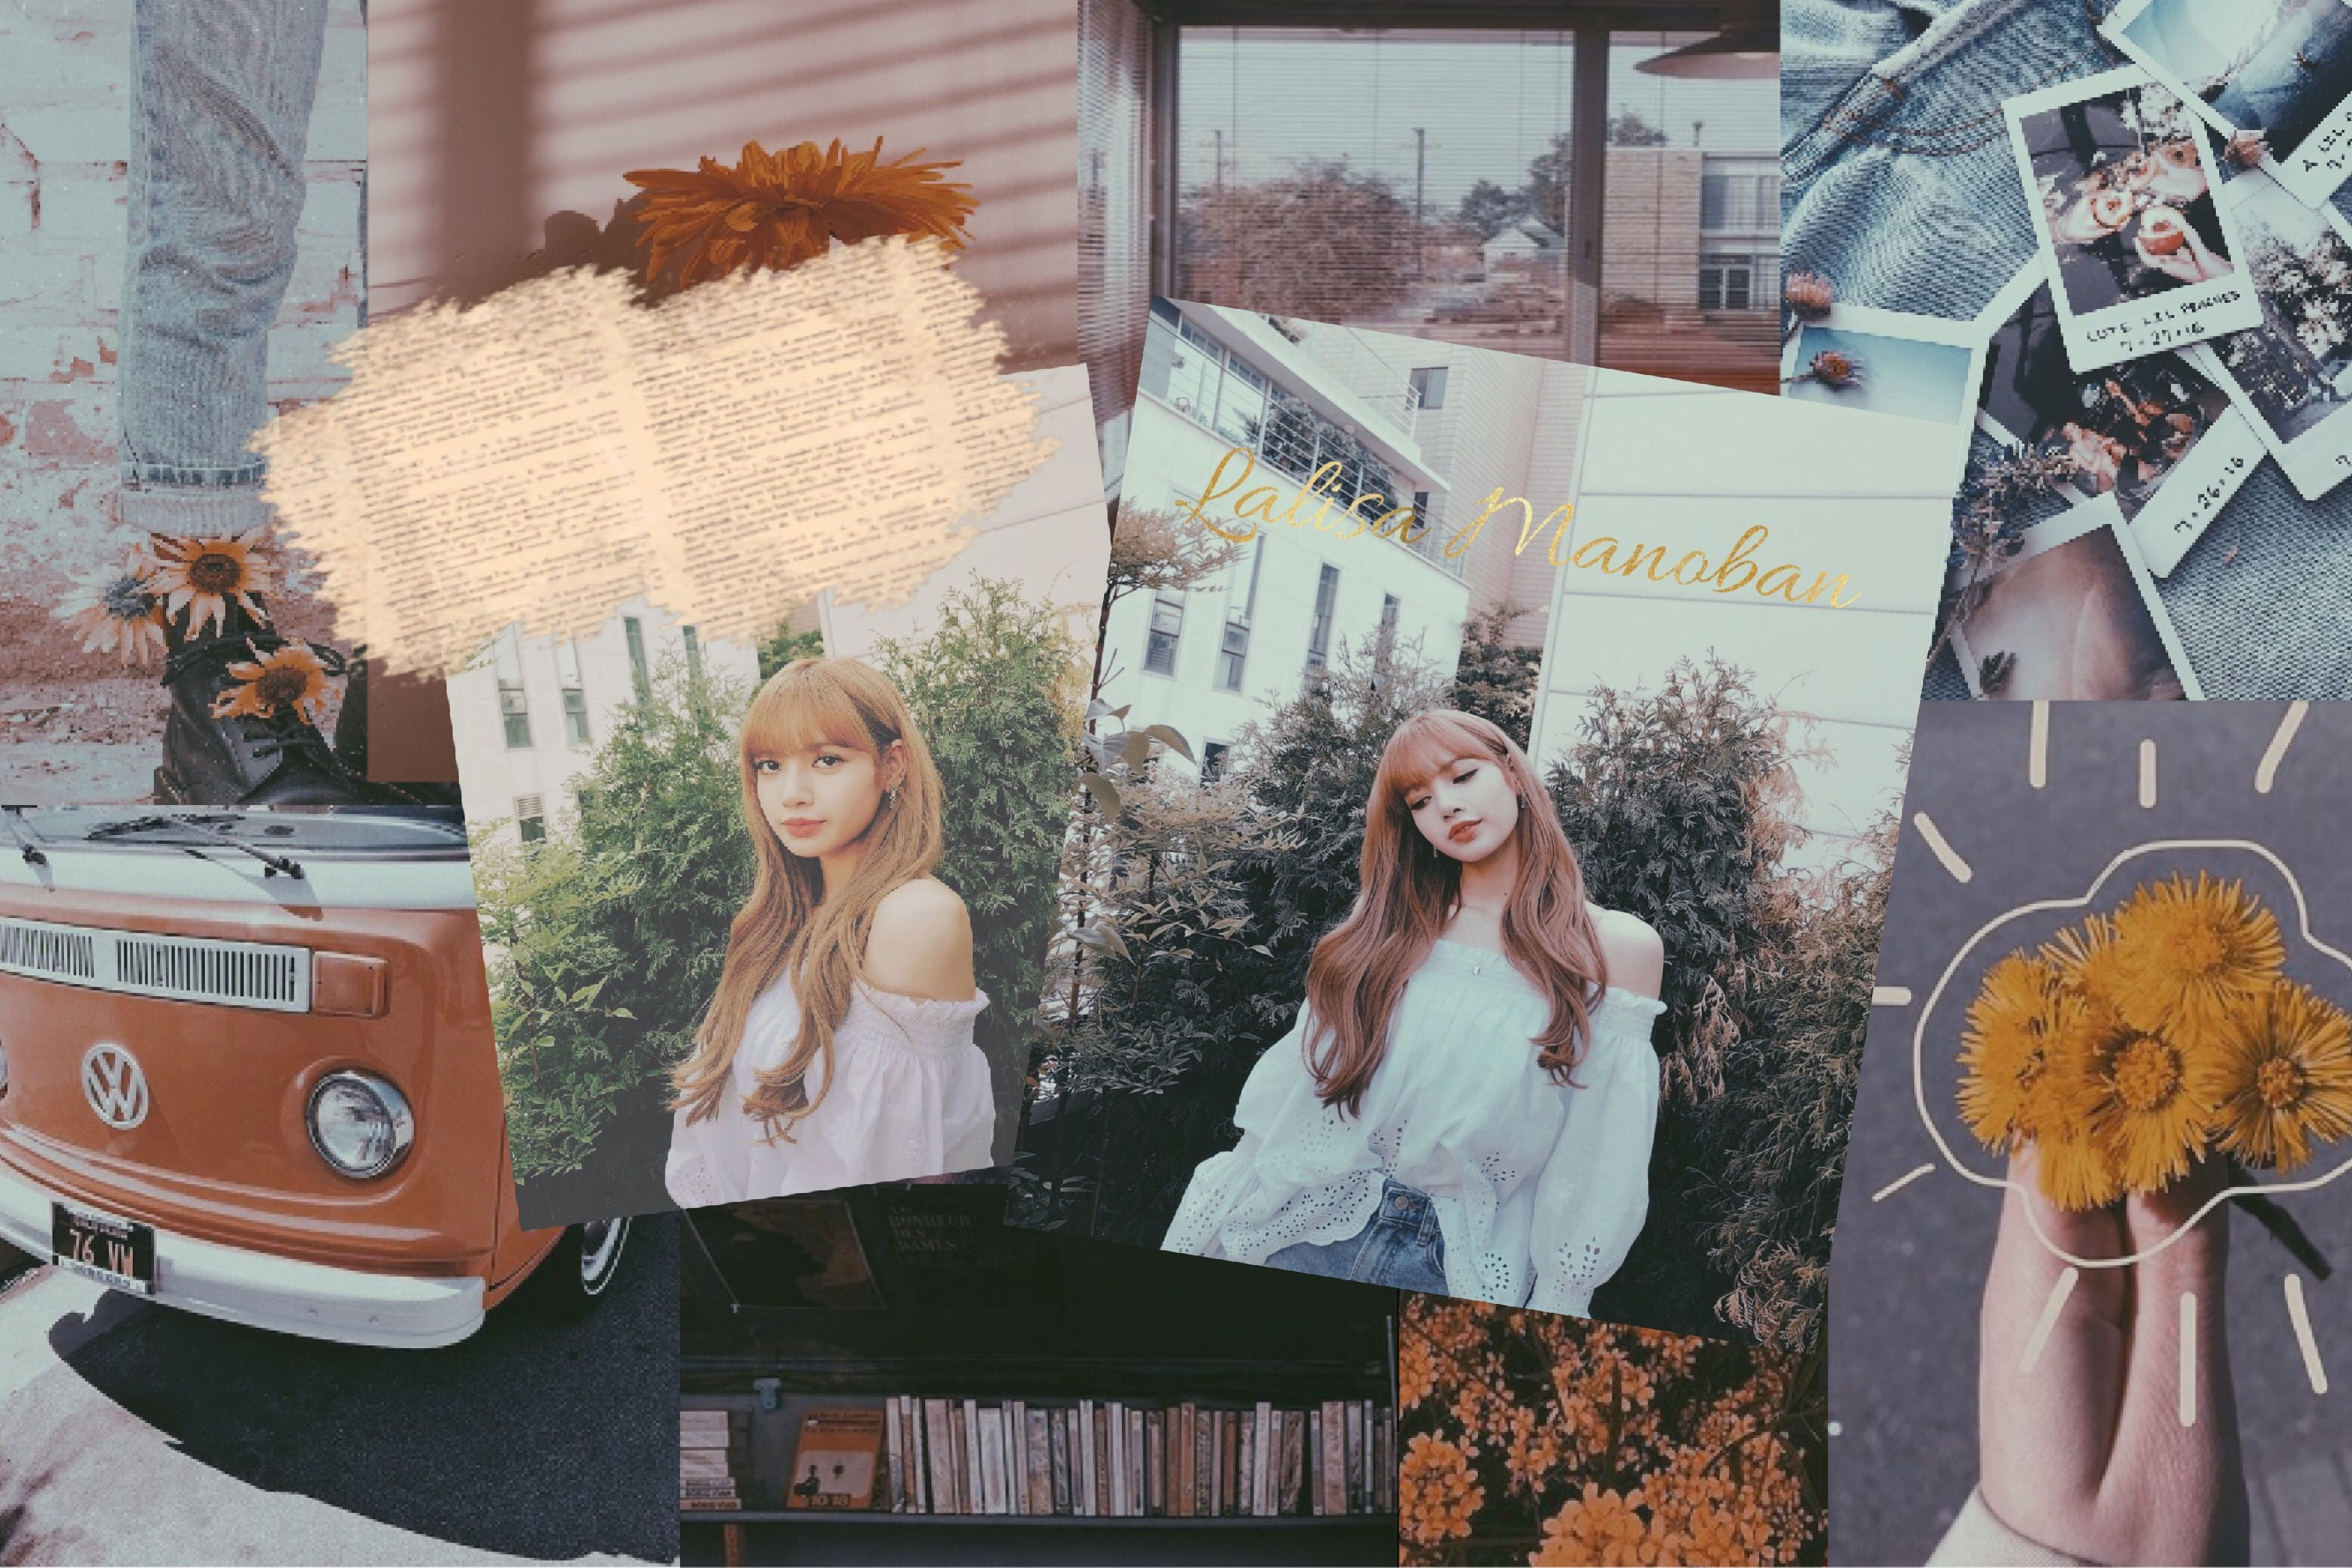 Lisa Blackpink Desktop Wallpaper In 2020 Lisa Blackpink Wallpaper Wallpaper Dekstop Destop Wallpaper